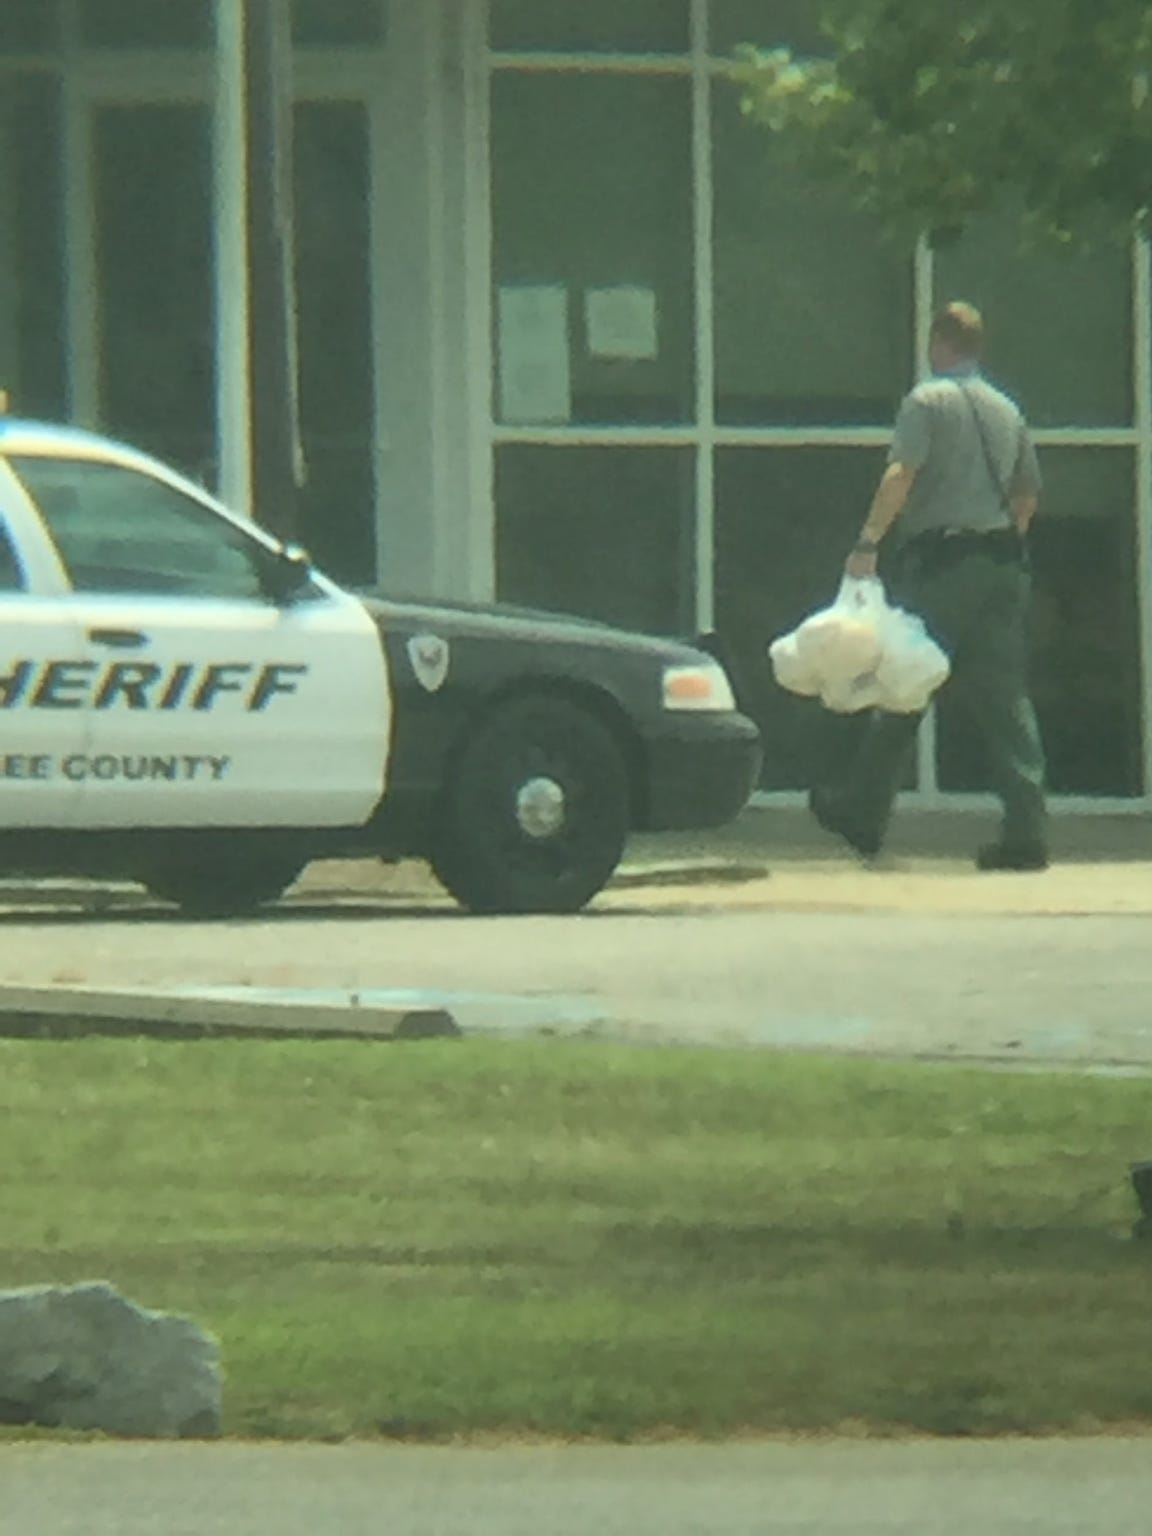 A Lee County deputy delivers food he received from